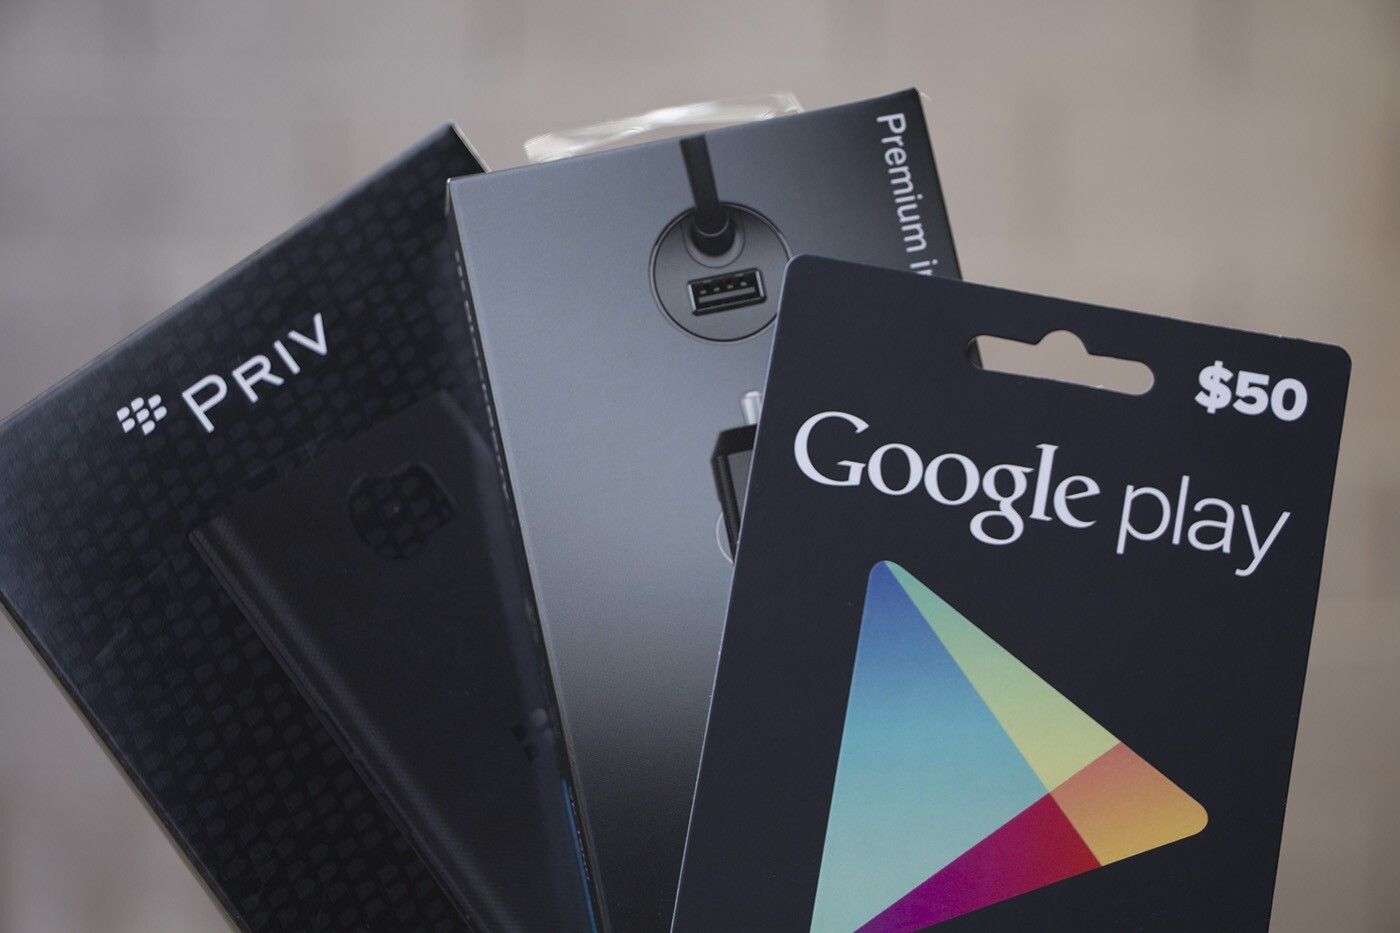 Enter now to win BlackBerry Priv accessories and a $50 Google Play giftcard!